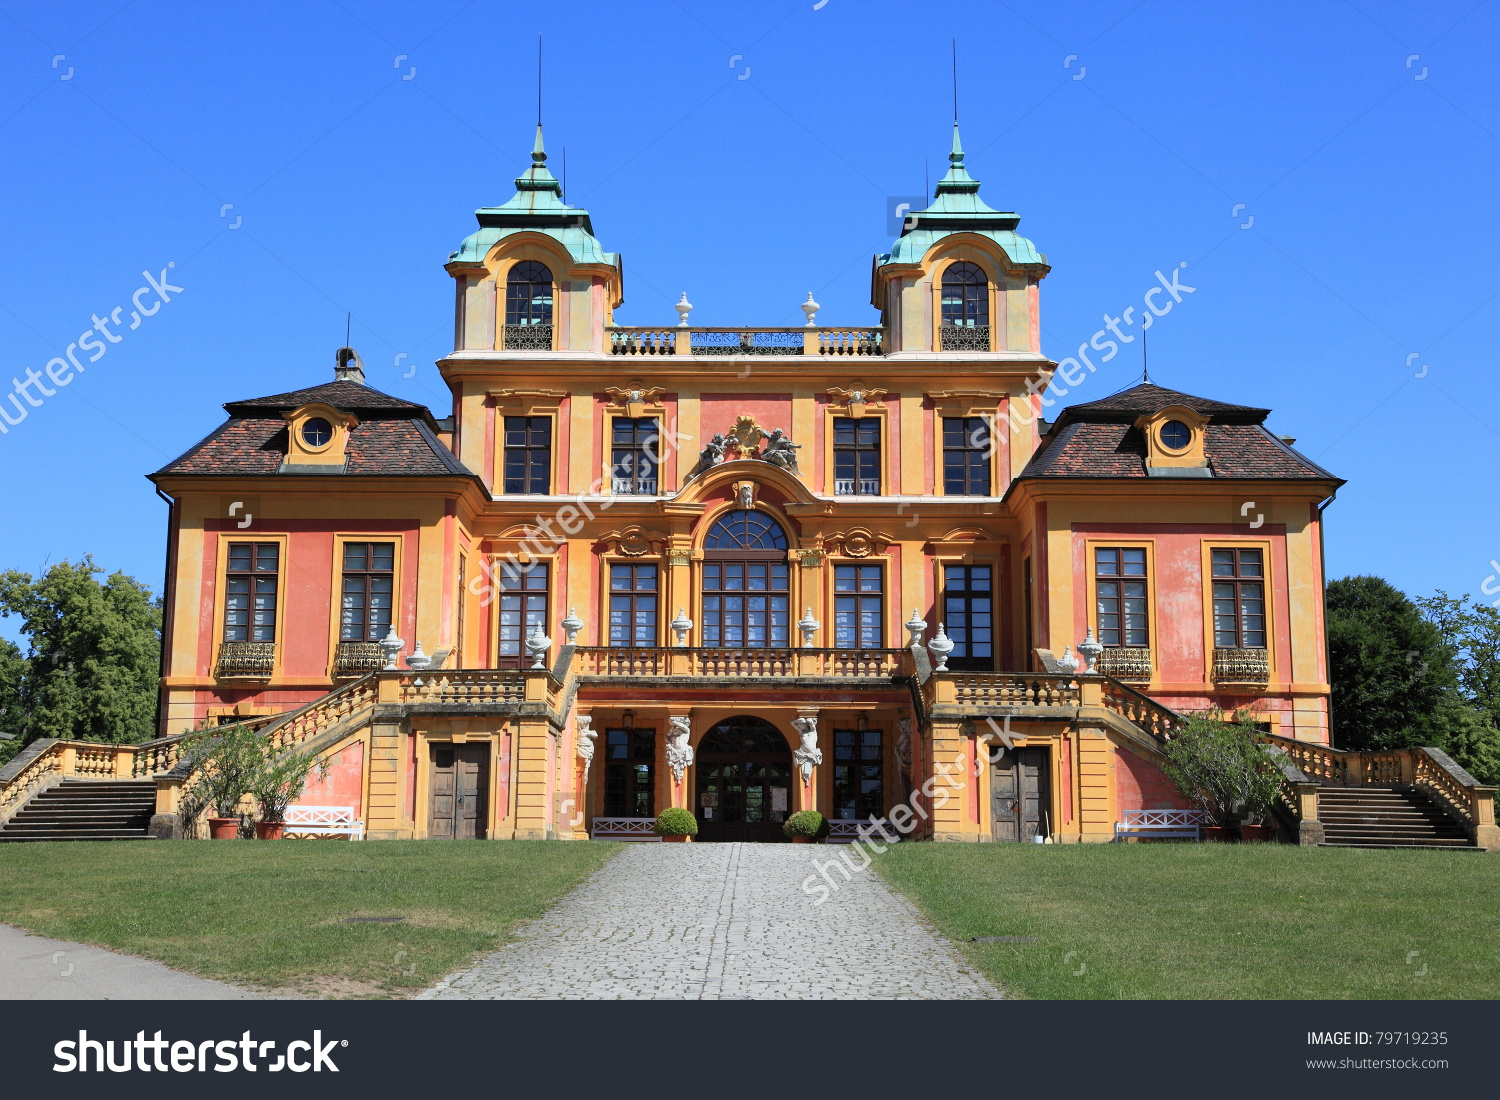 Ludwigsburg germany clipart #4